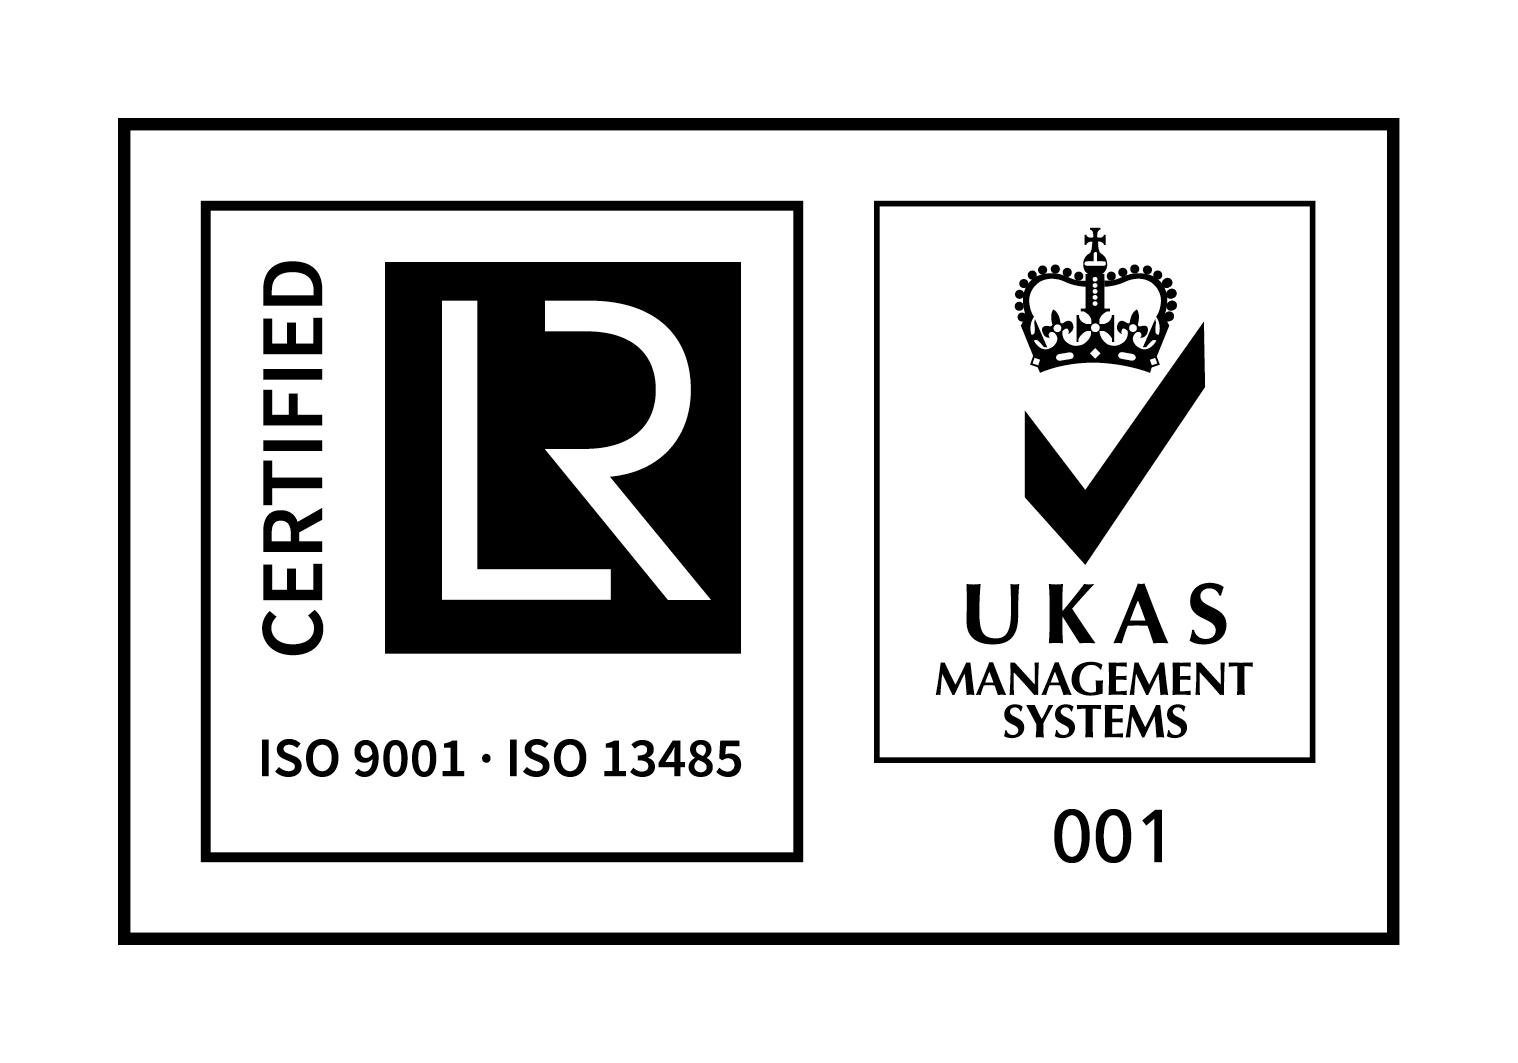 ISO9001,ISO13485 with UKAS